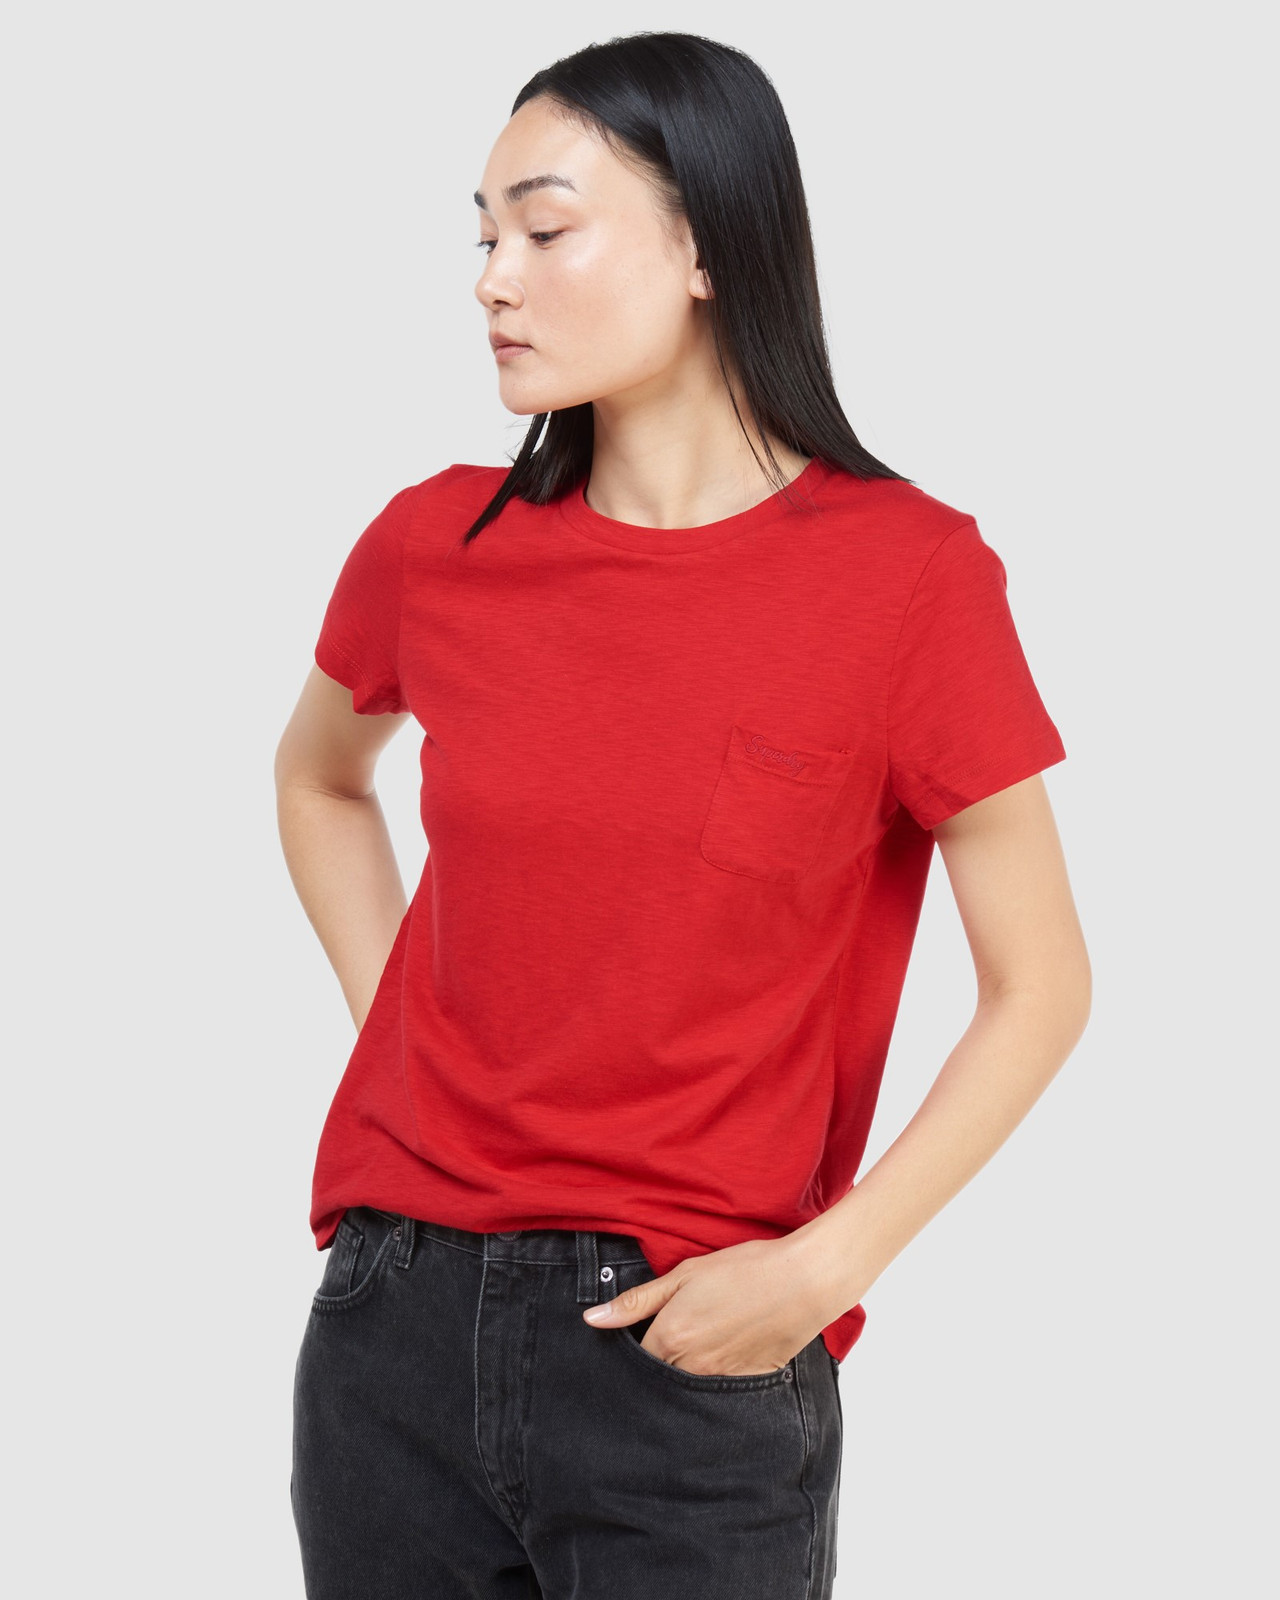 Superdry Womens SCRIPTED CREW TEE Red Plain T Shirts 3